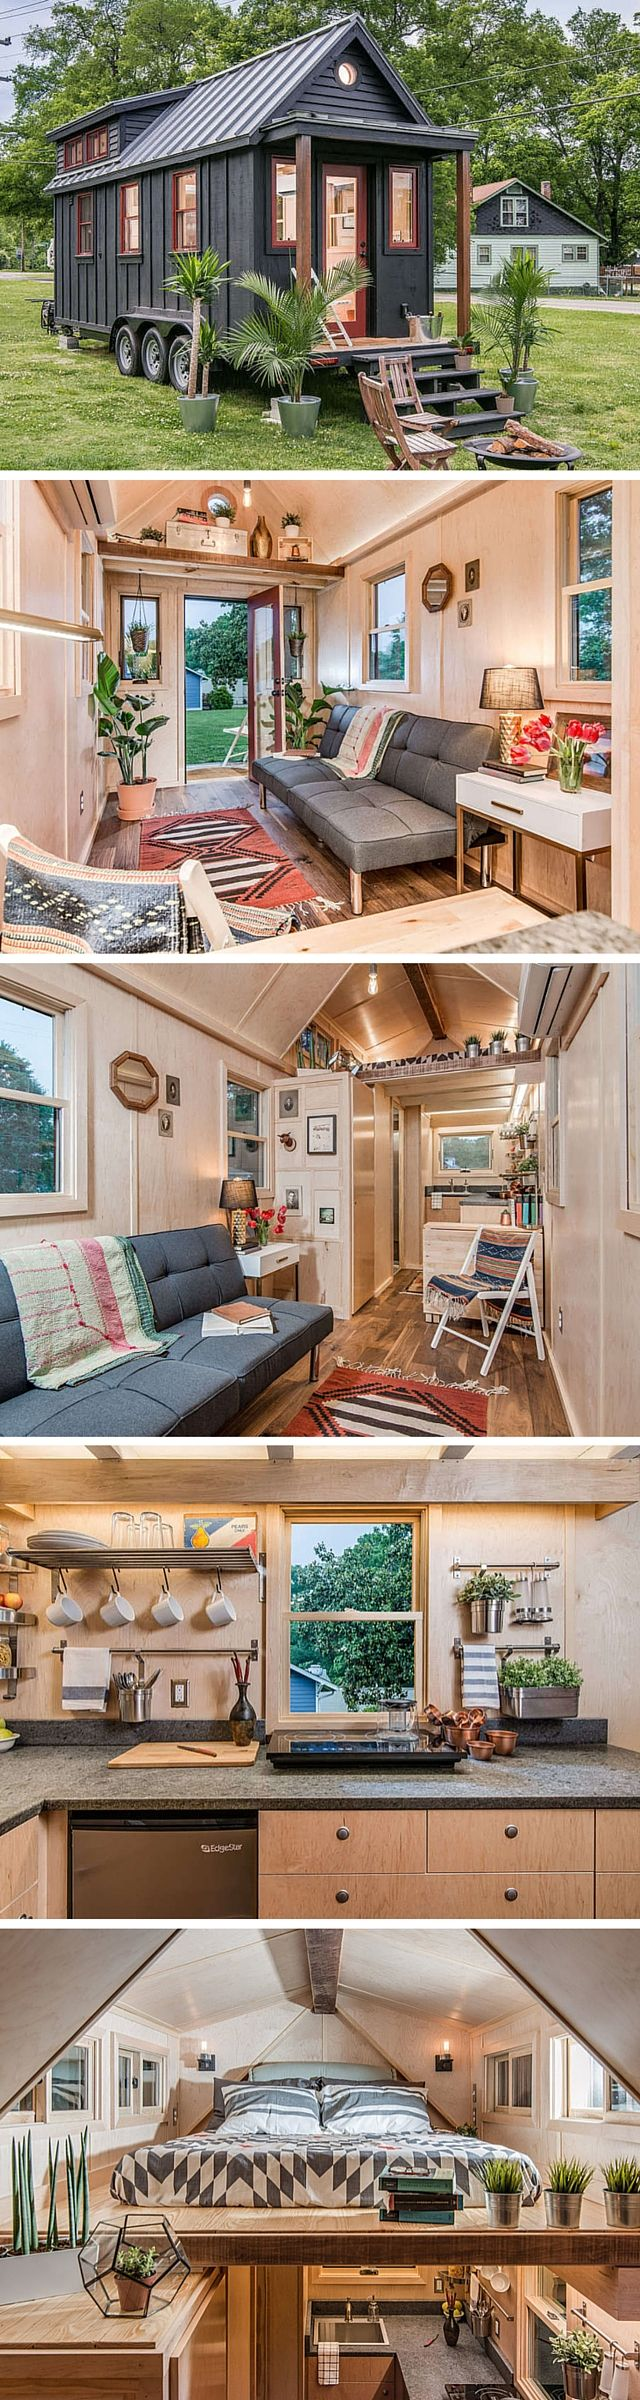 The Riverside Tiny House By New Frontier Homes A 246 Sq Ft Home With